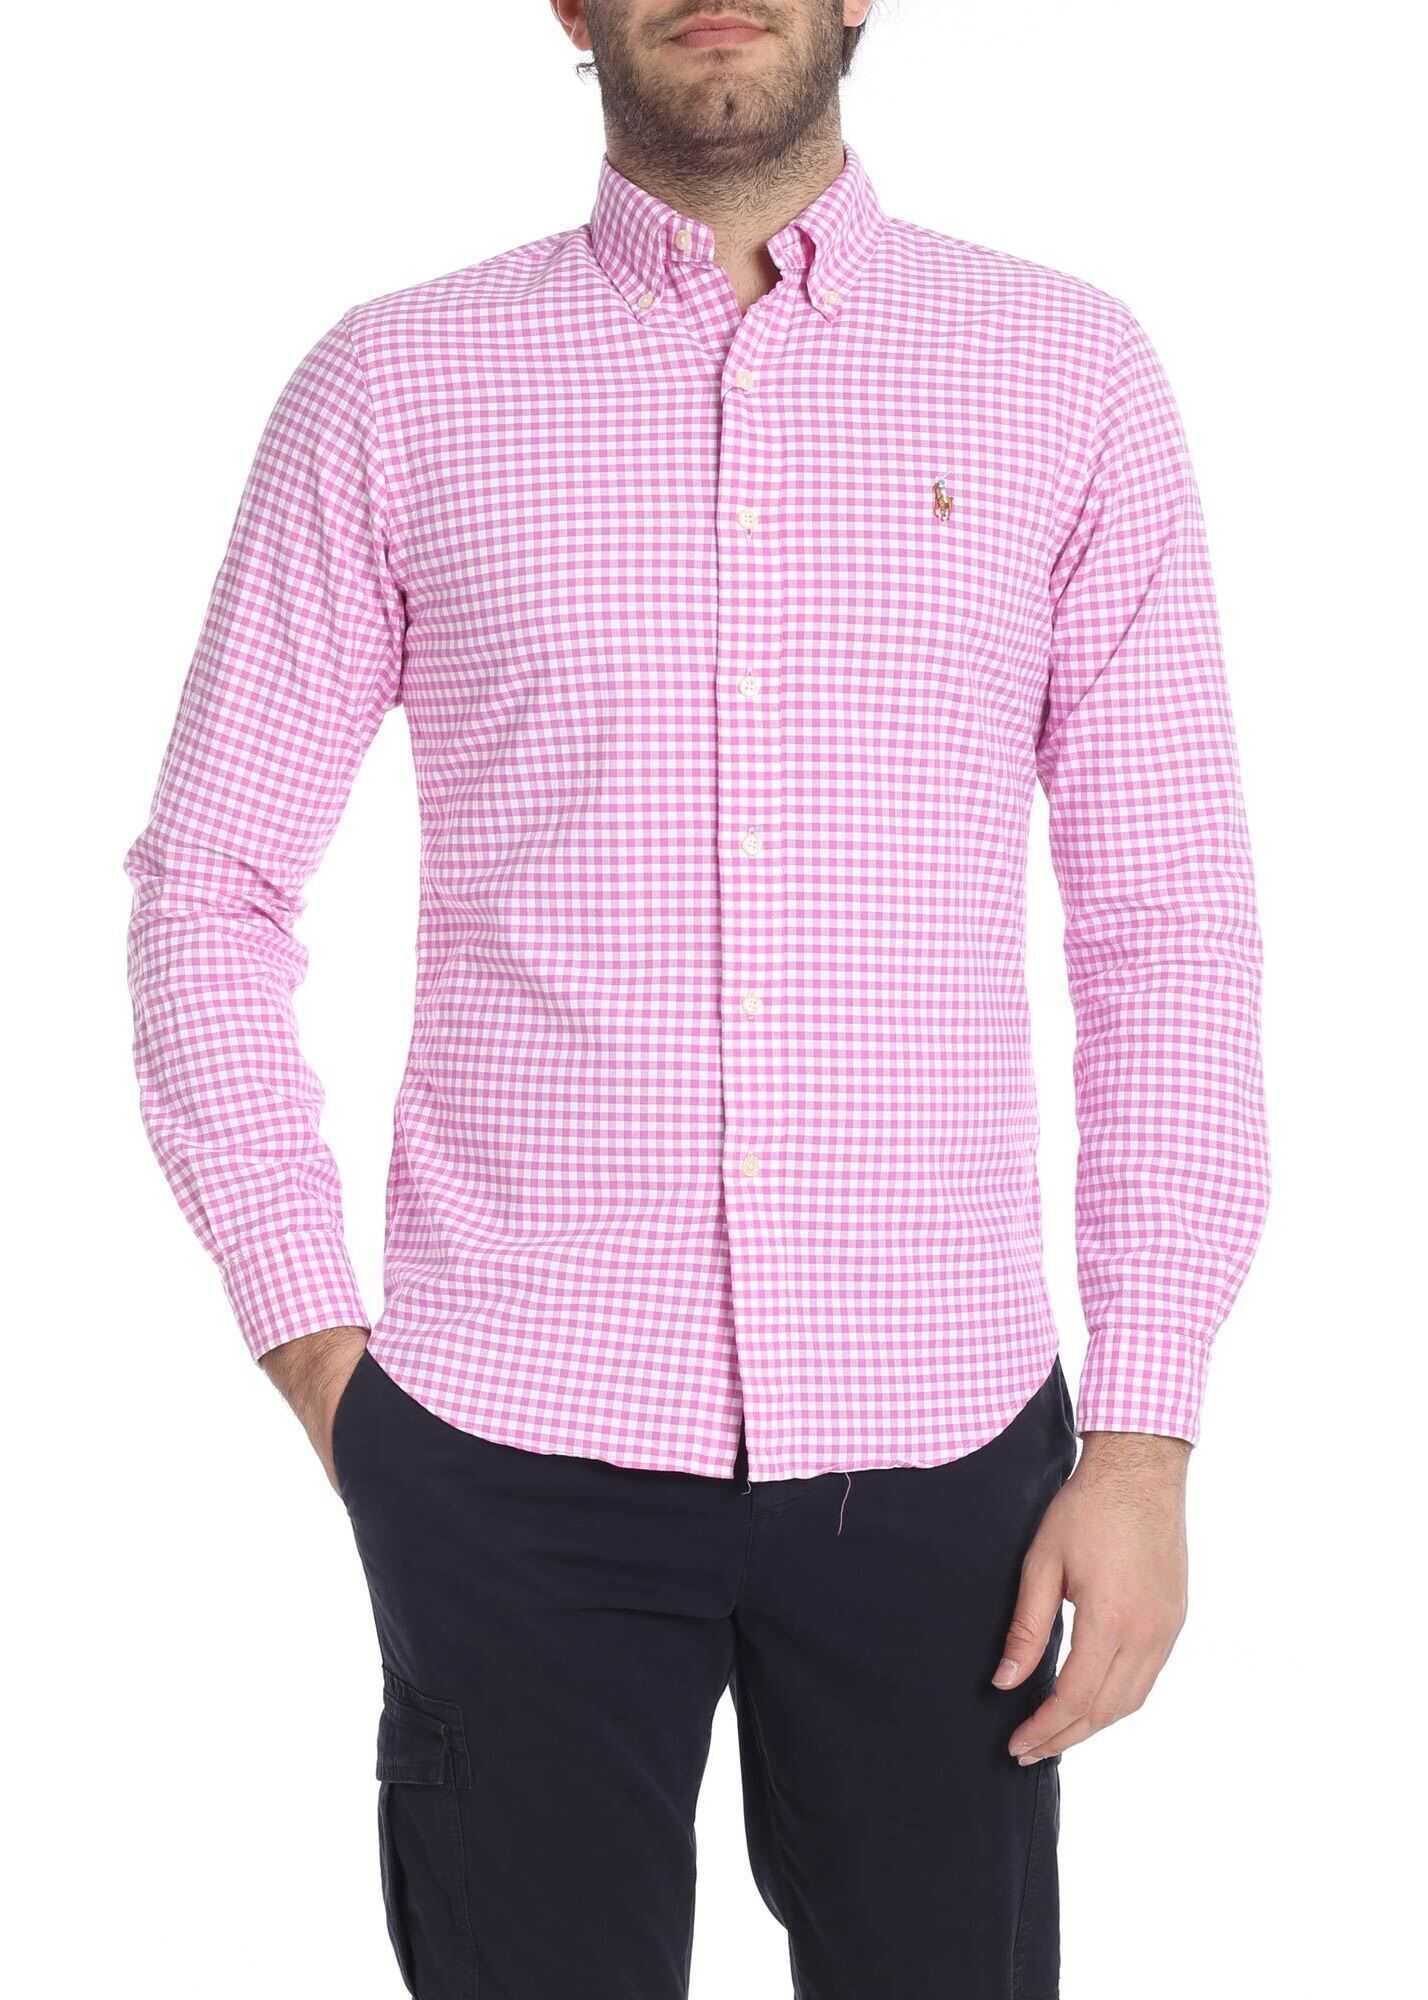 Ralph Lauren Vichy Shirt In White And Pink Pink imagine